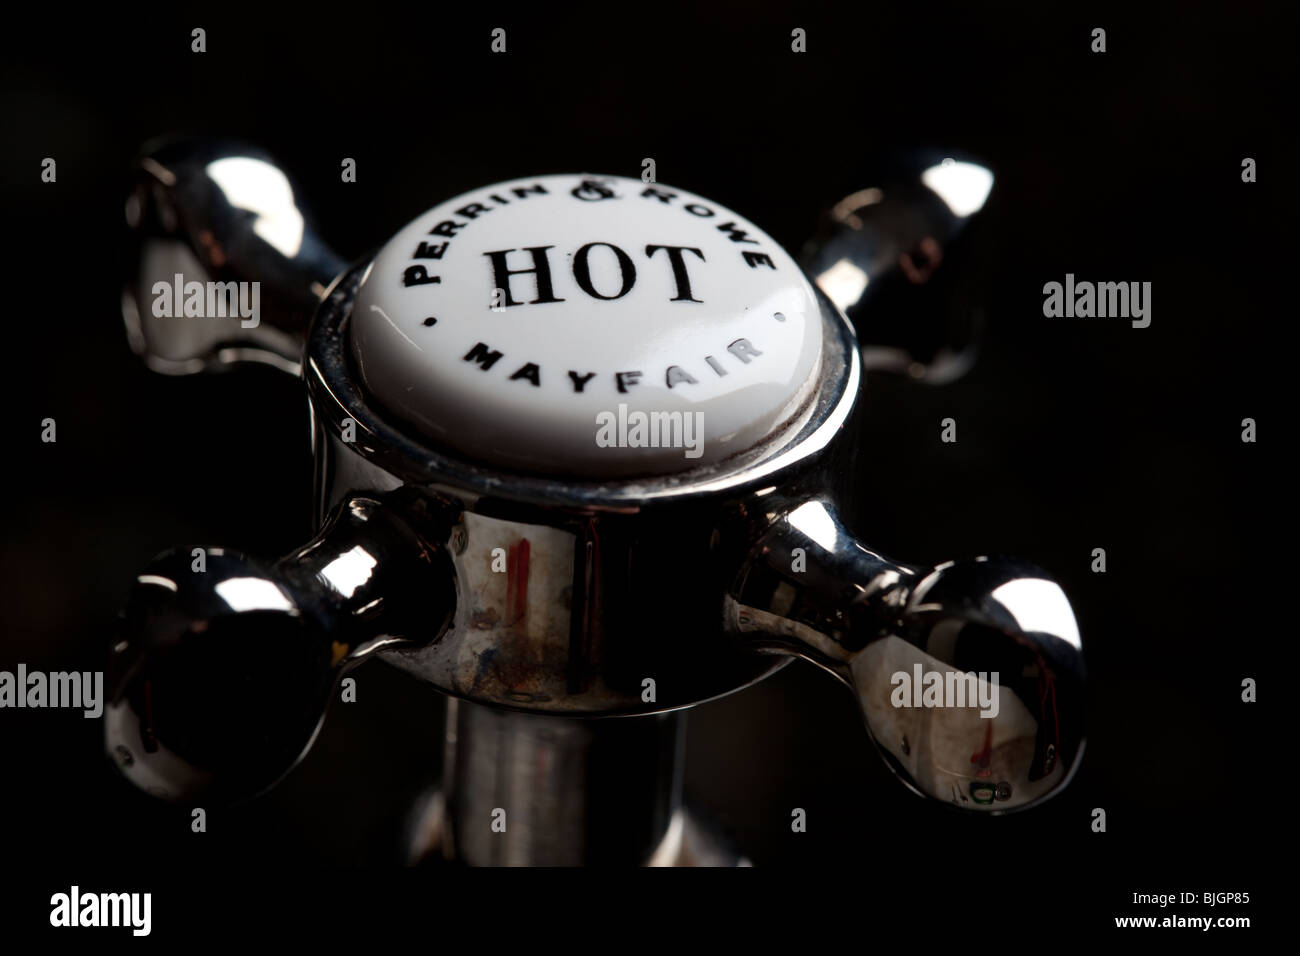 A sightly grubby and tarnished hot water tap - Stock Image